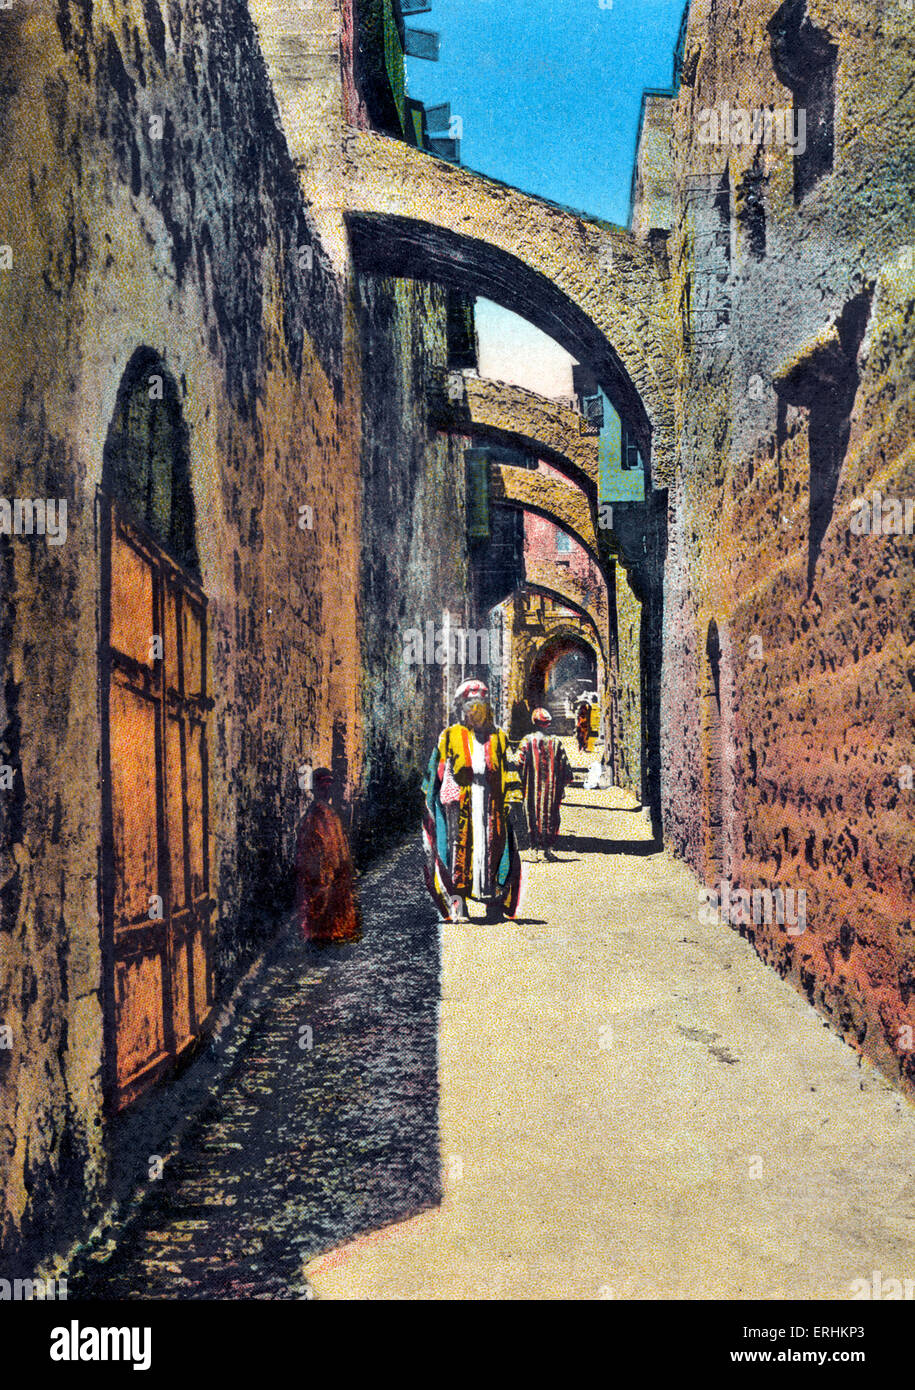 Jerusalem - the fifth Station of the Cross in the Via Dolorosa (the Way of Grief). Where Christian pilgrims walk. Stock Photo